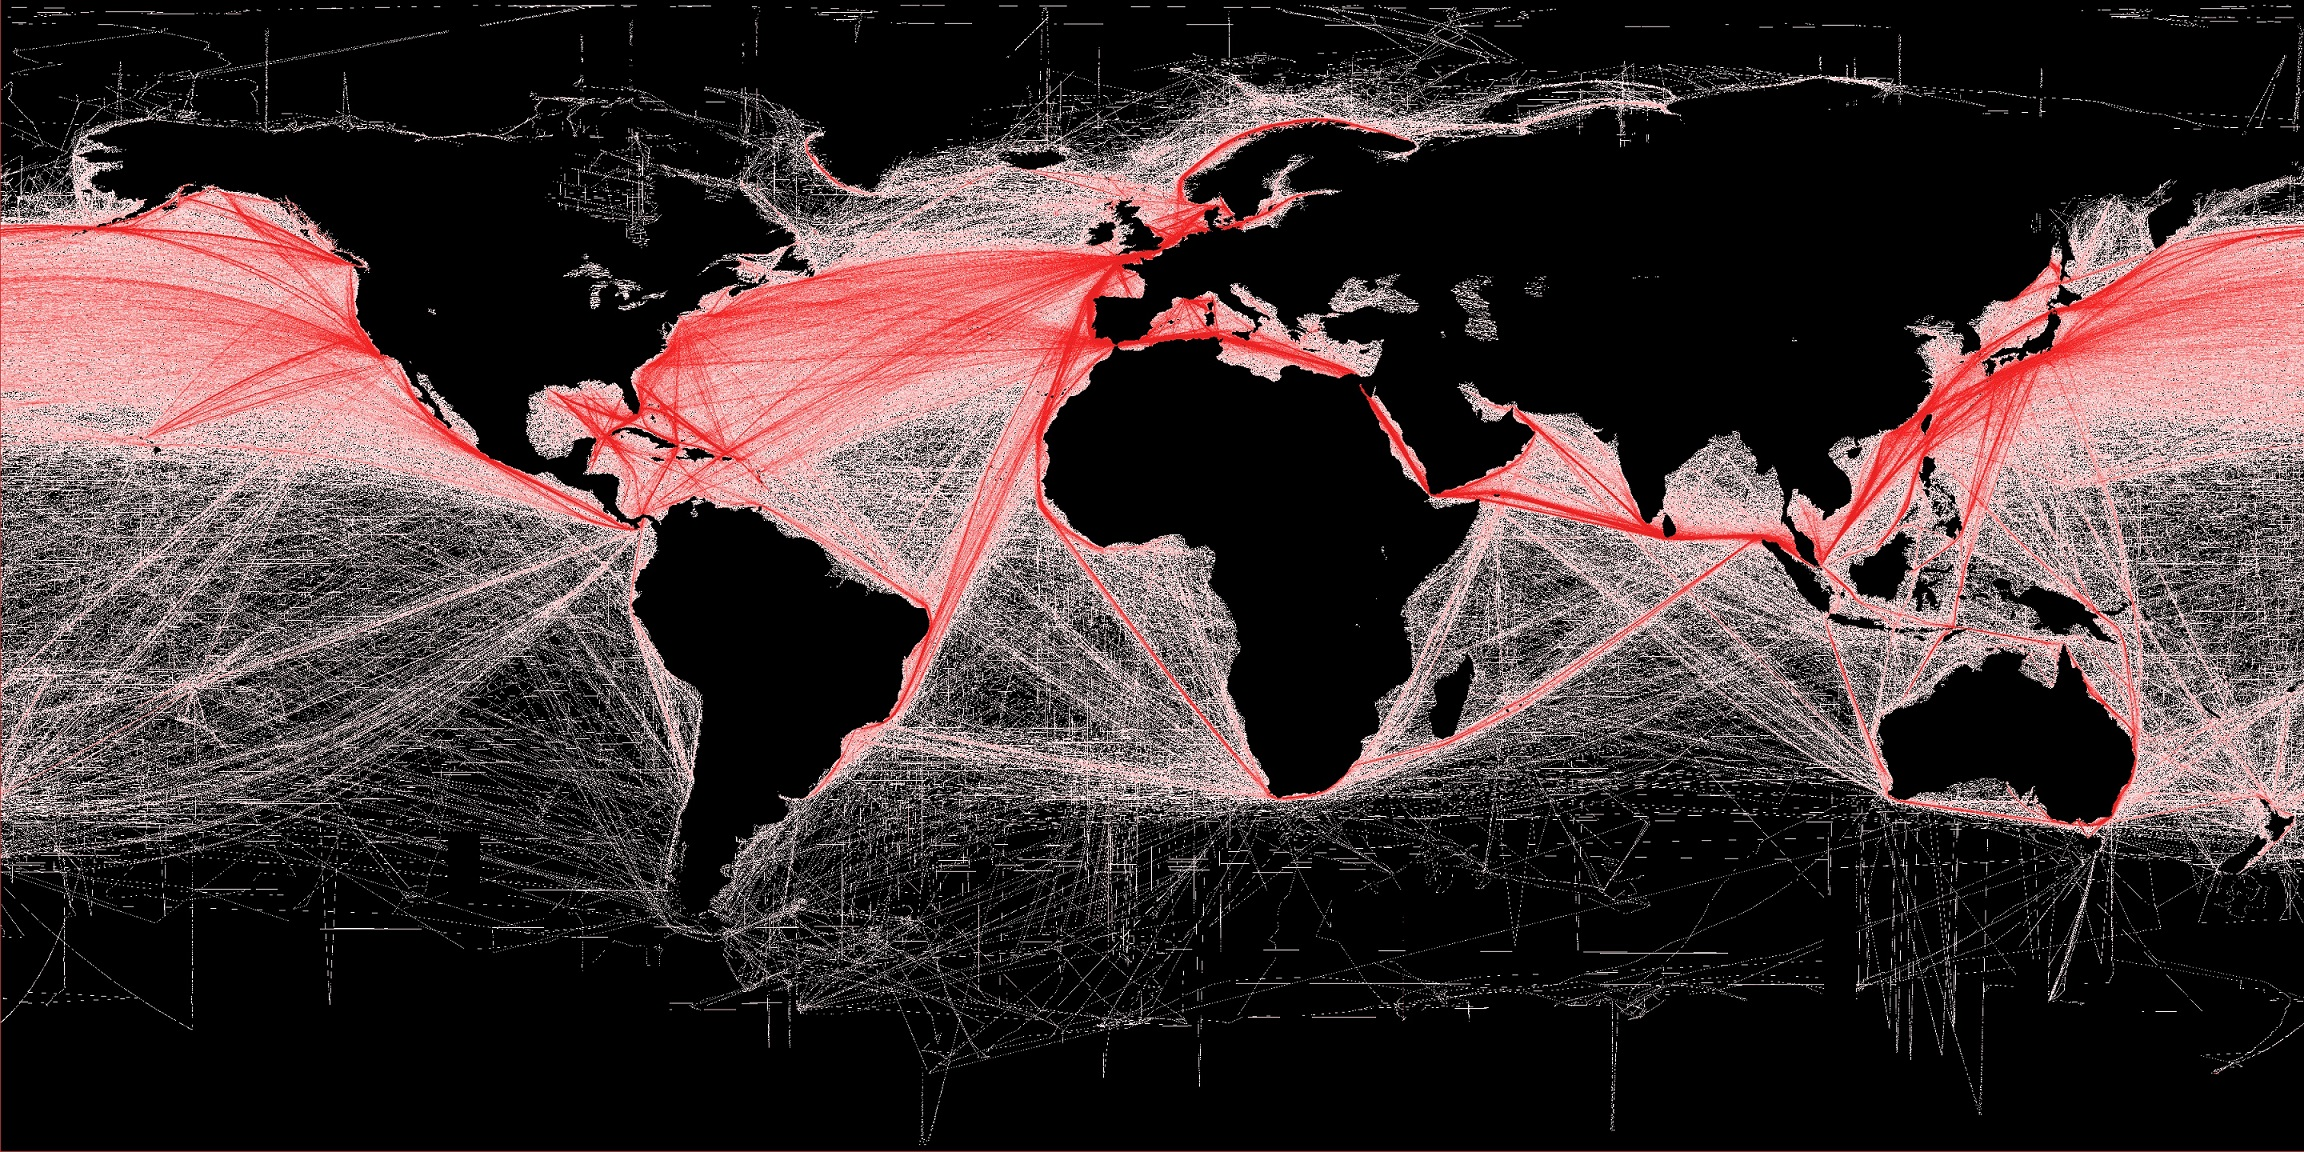 Digital communication between ships could help optimise shipping routes and reduce fuel consumption.